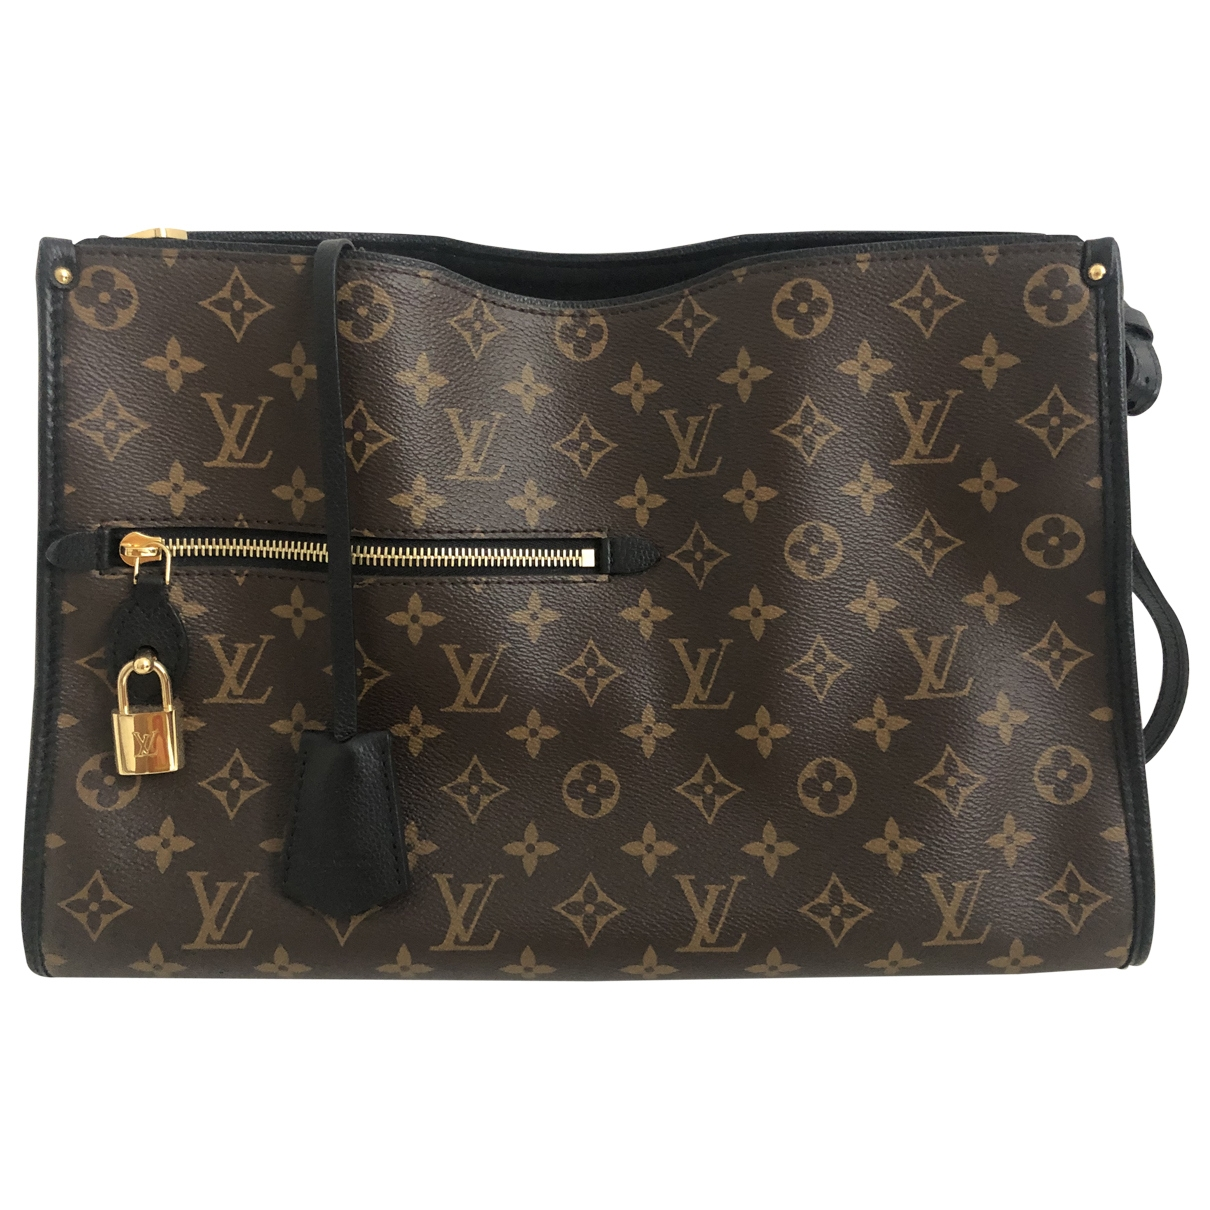 Louis Vuitton Popincourt Handtasche in Leinen